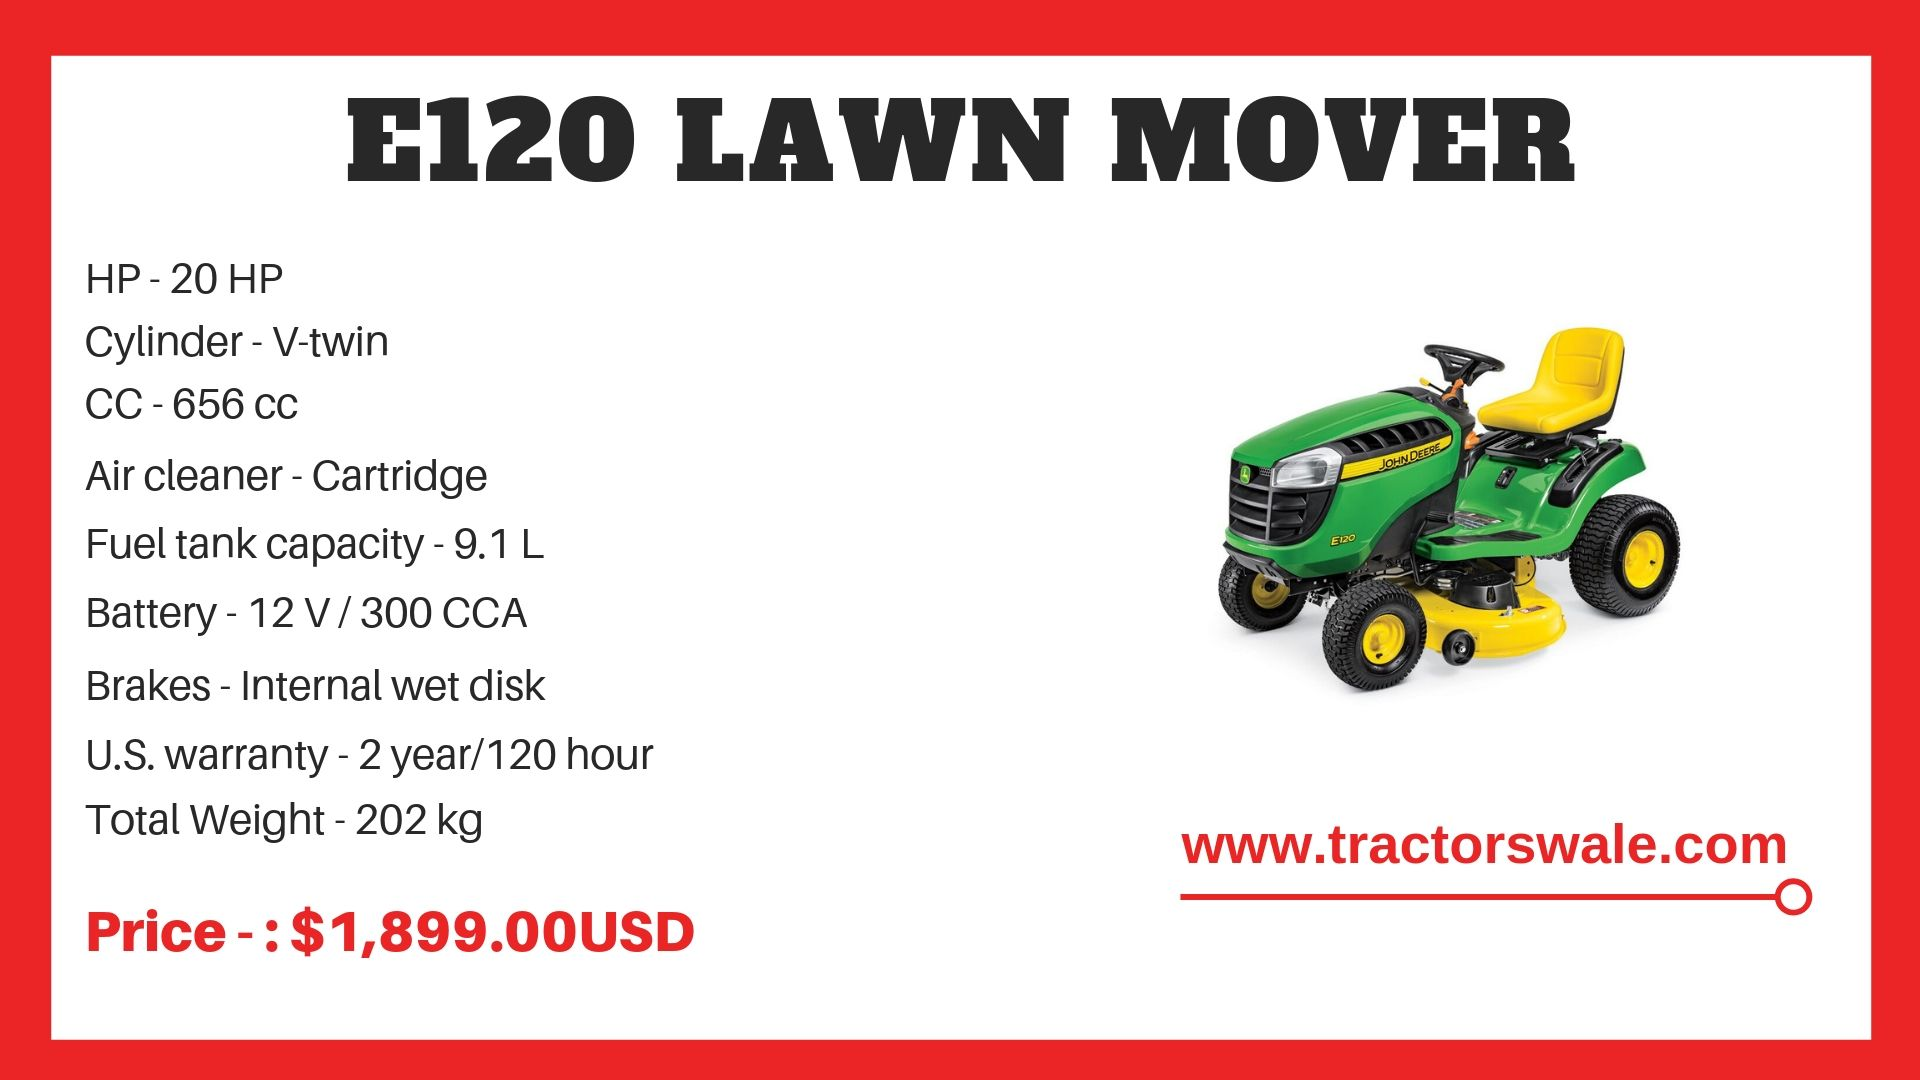 Lawn Mower E120 Specifications